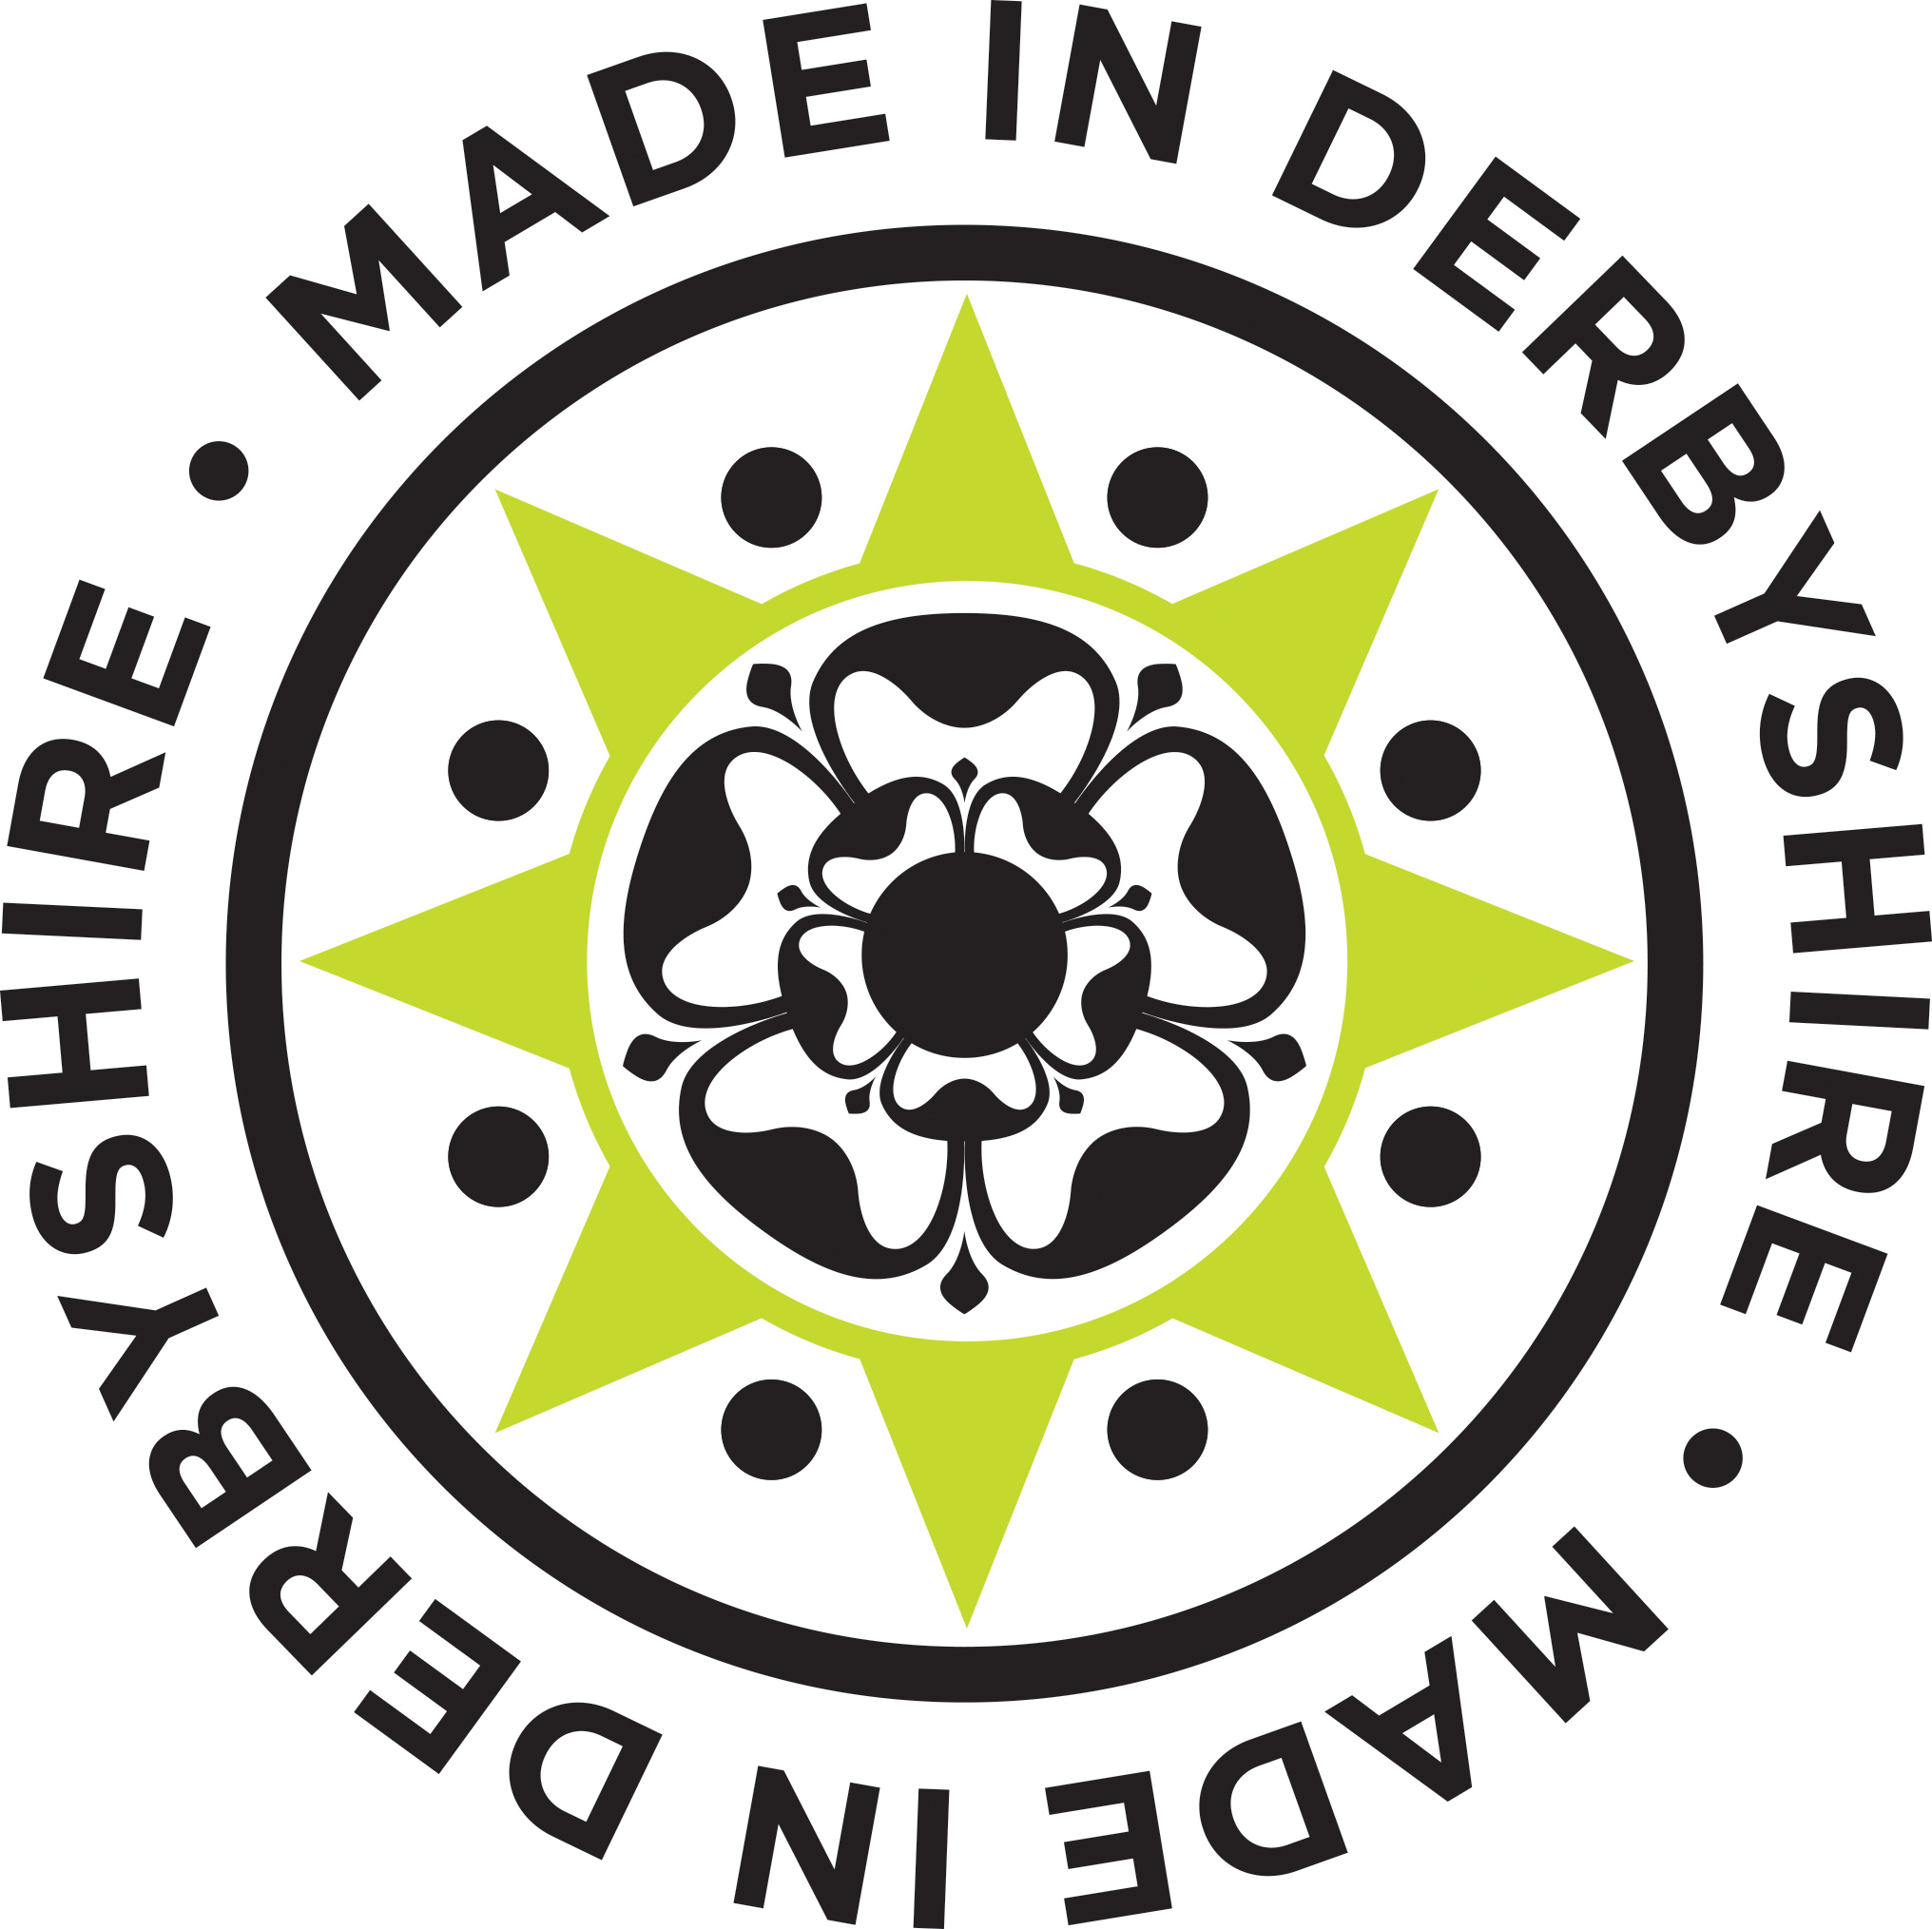 Made_in_Derbyshire_logo.jpg